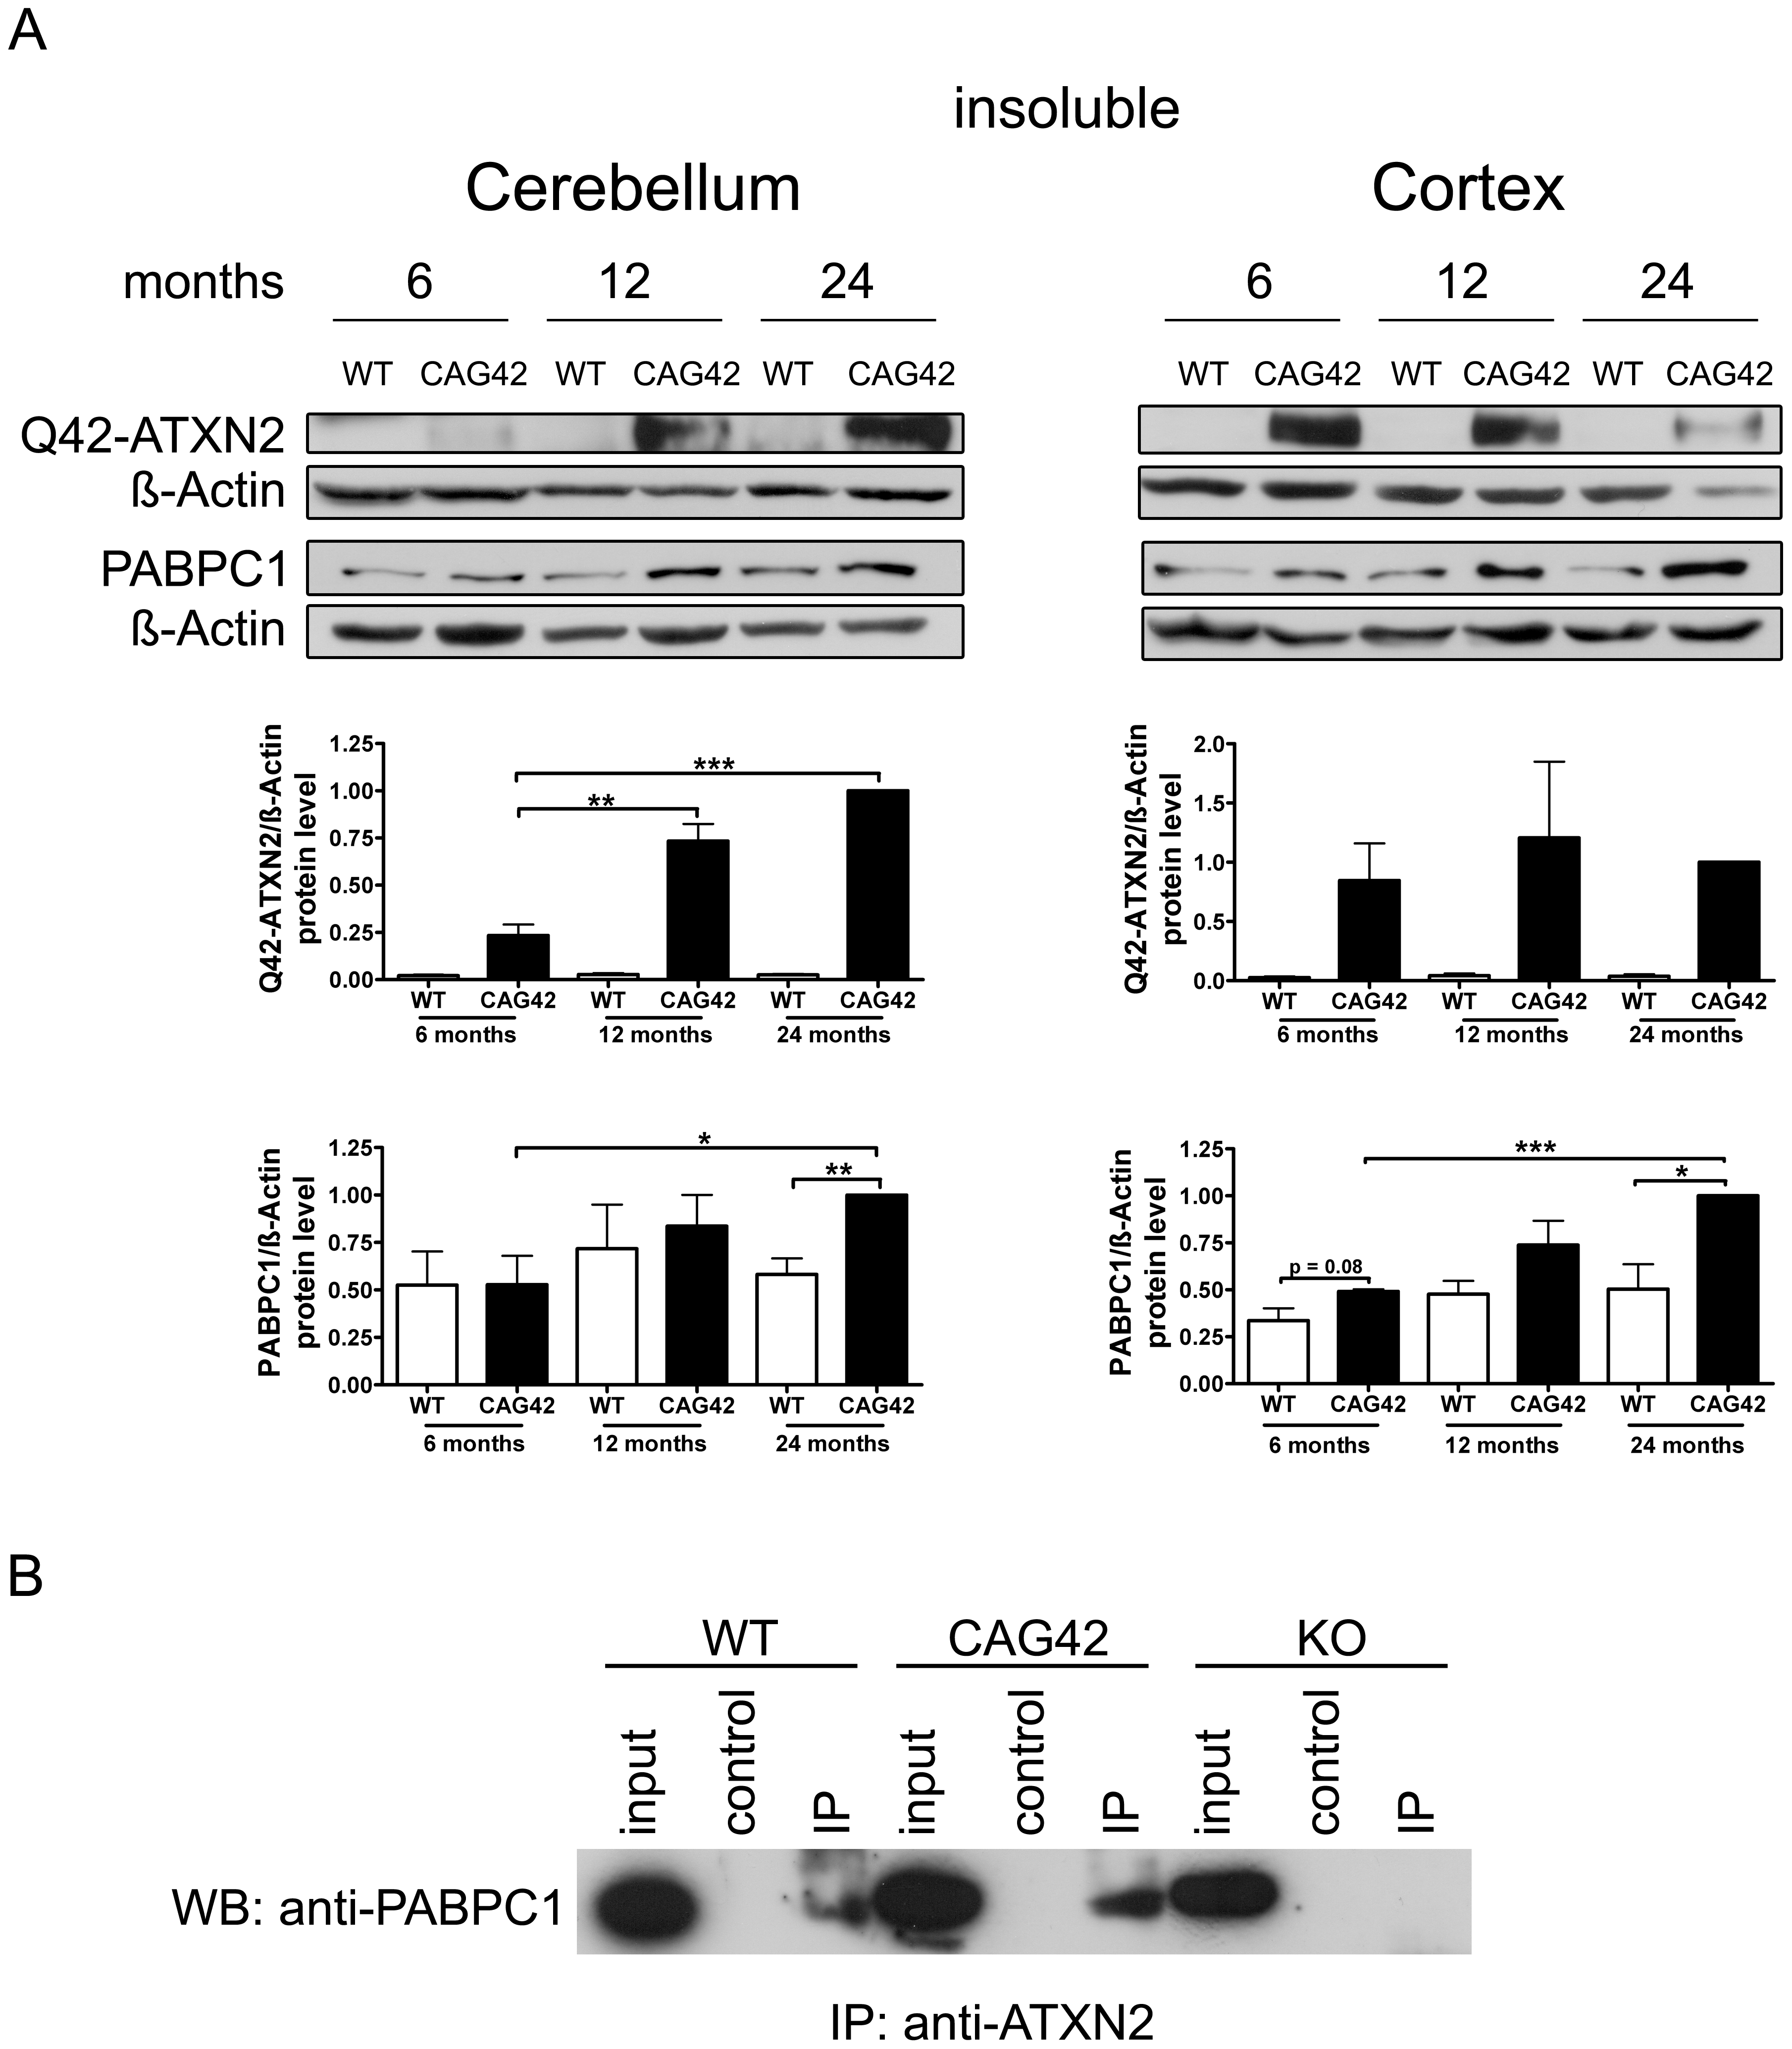 Increased sequestration of PABPC1 by insoluble Q42-ATXN2 with age.